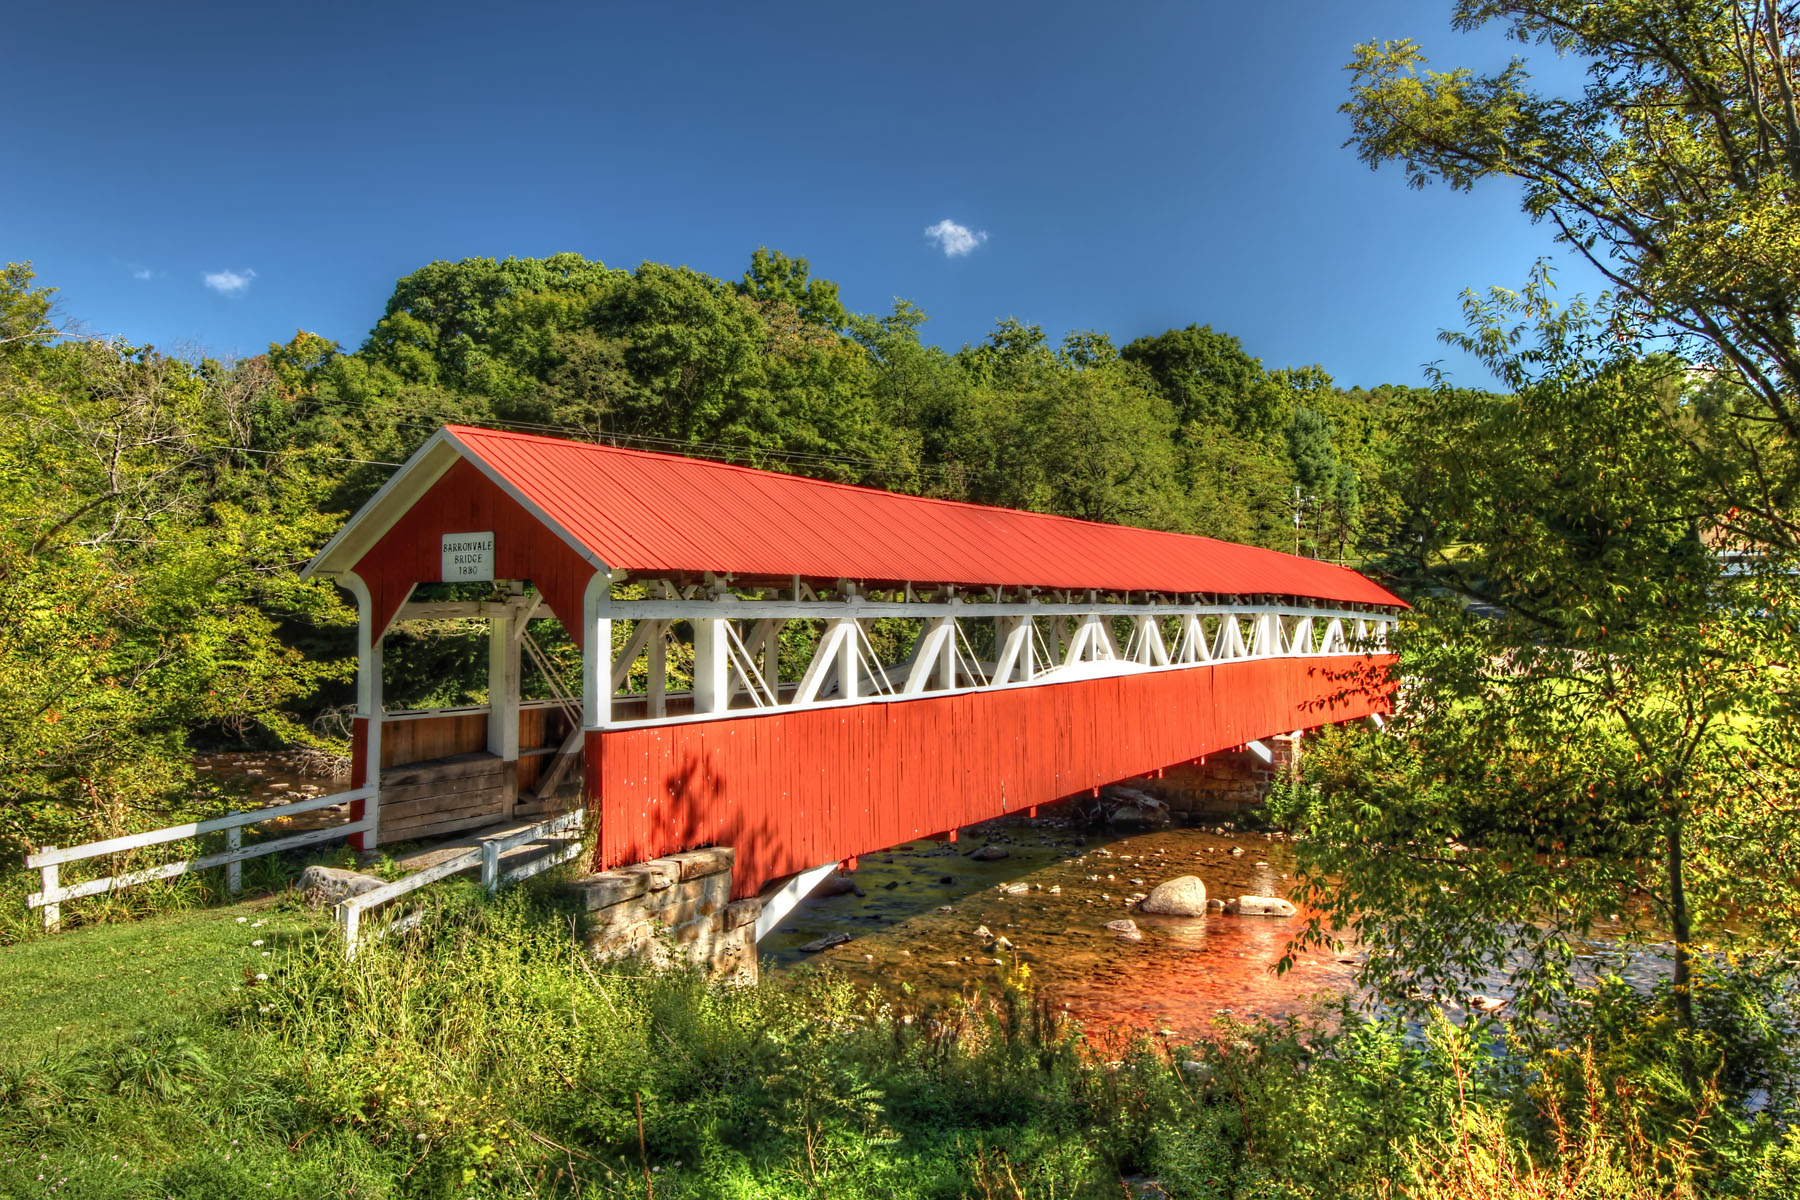 Barronvale Covered Bridge, Somerset County, PA. Photographed by Rusty Glessner 9.7.2014.